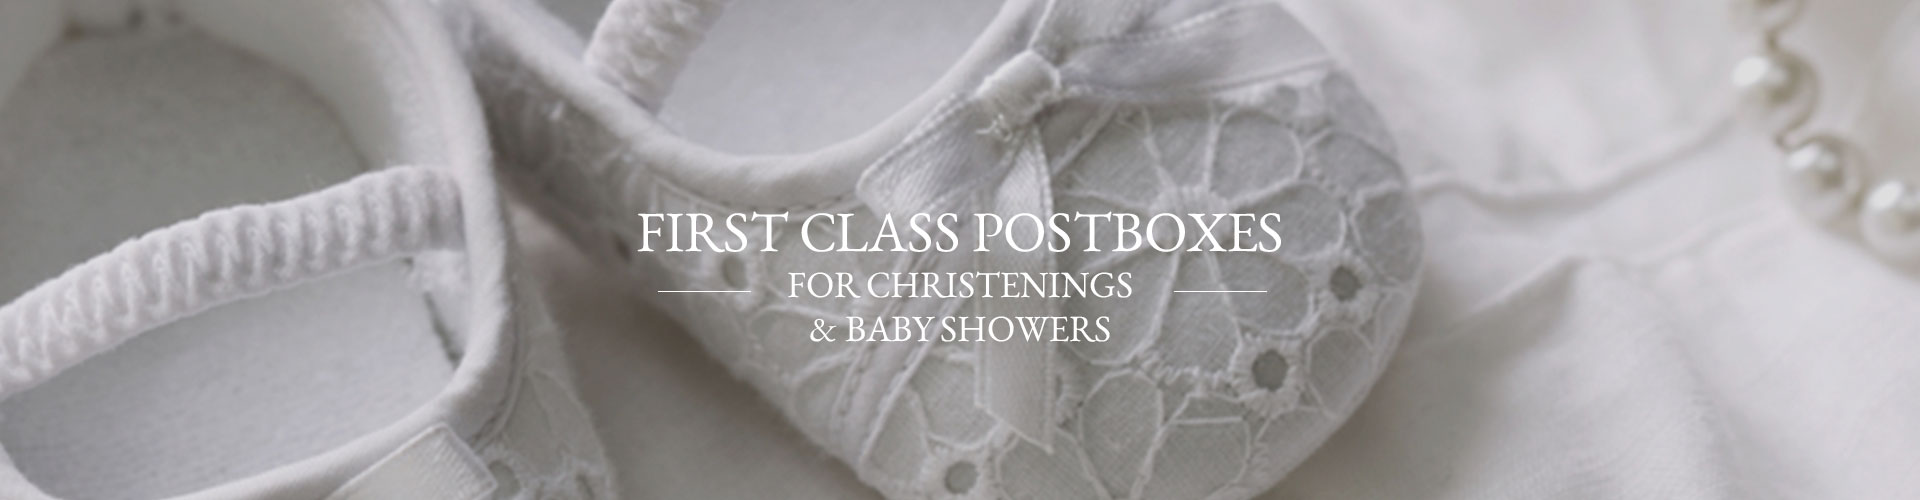 First Class Postboxes for Christenings and Baby Showers